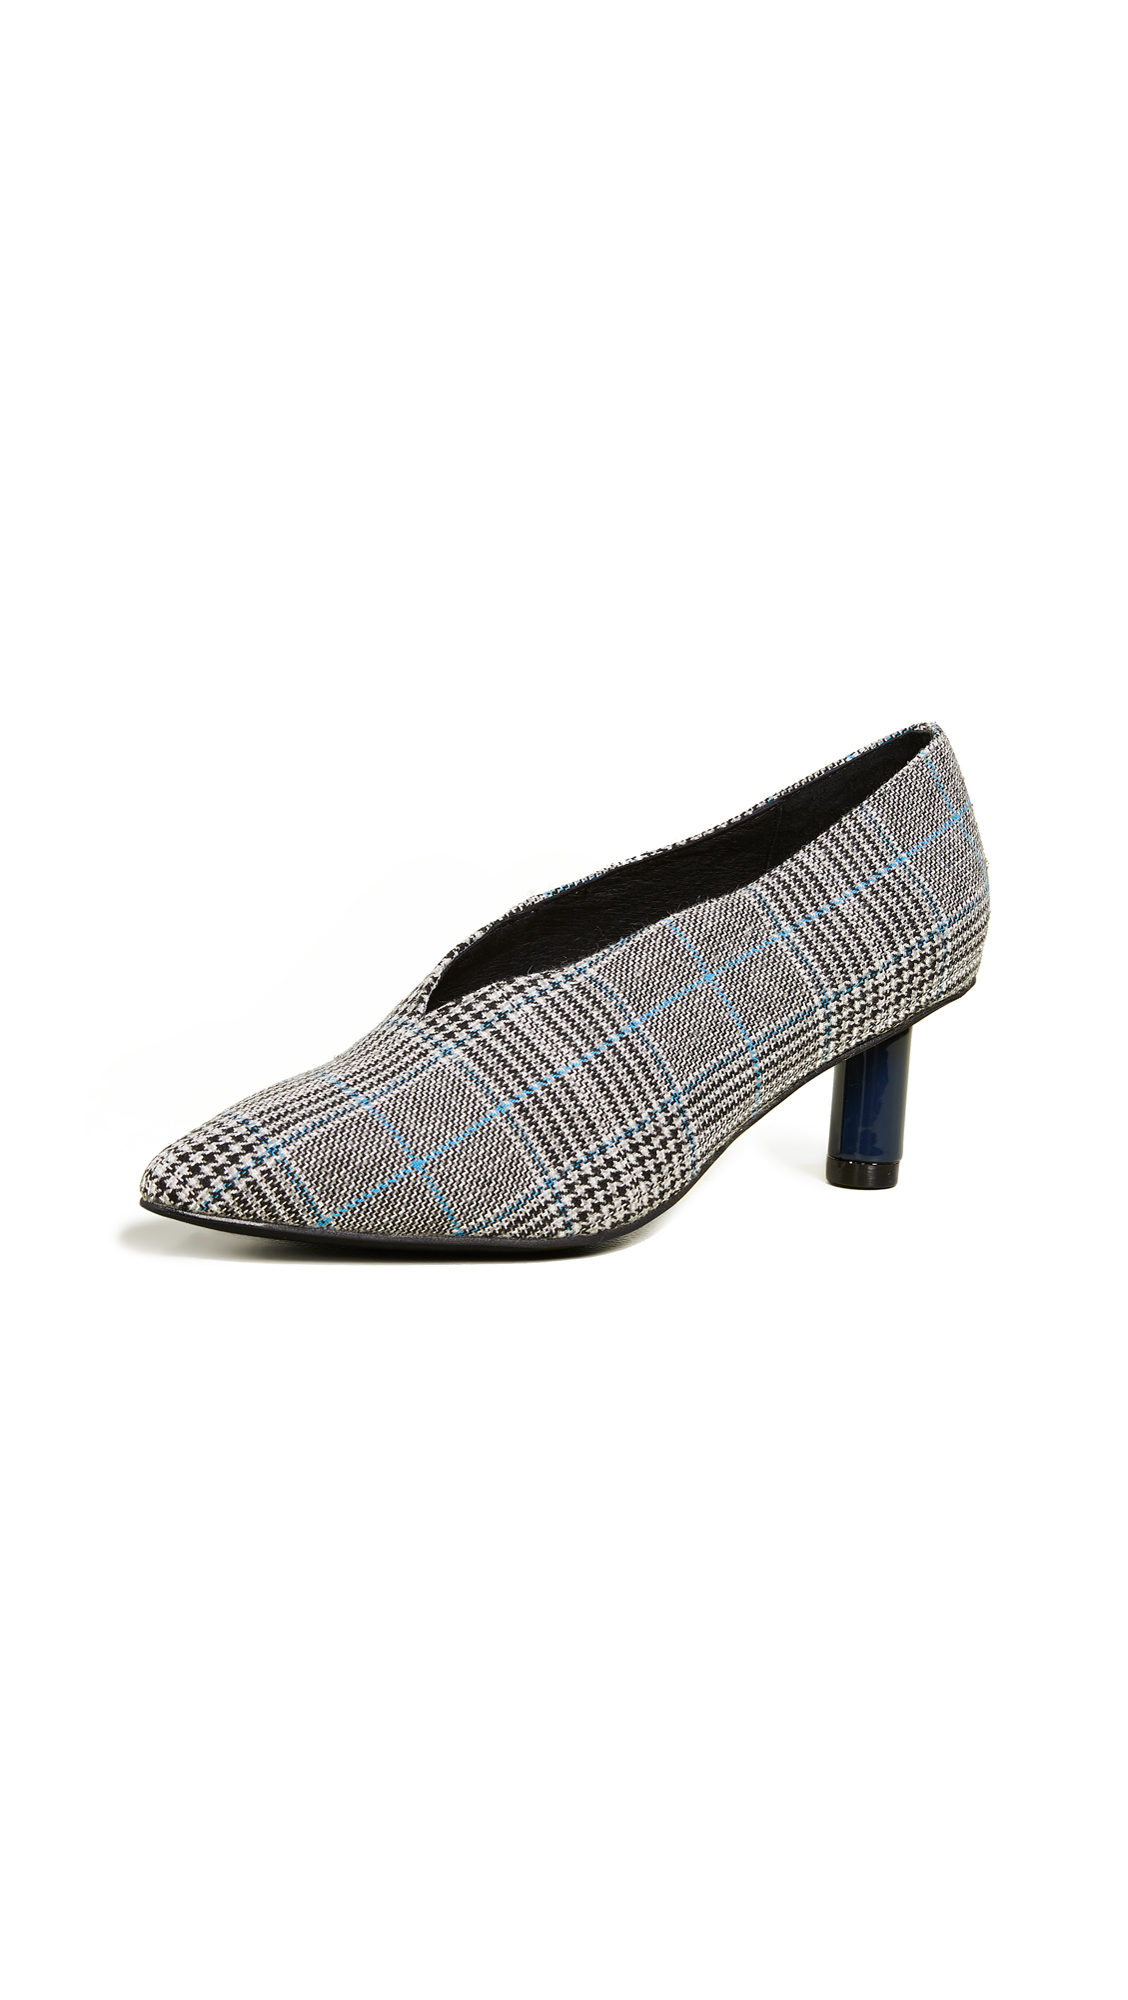 Jeffrey Campbell Carla 2 Pumps - Blue Plaid/Navy